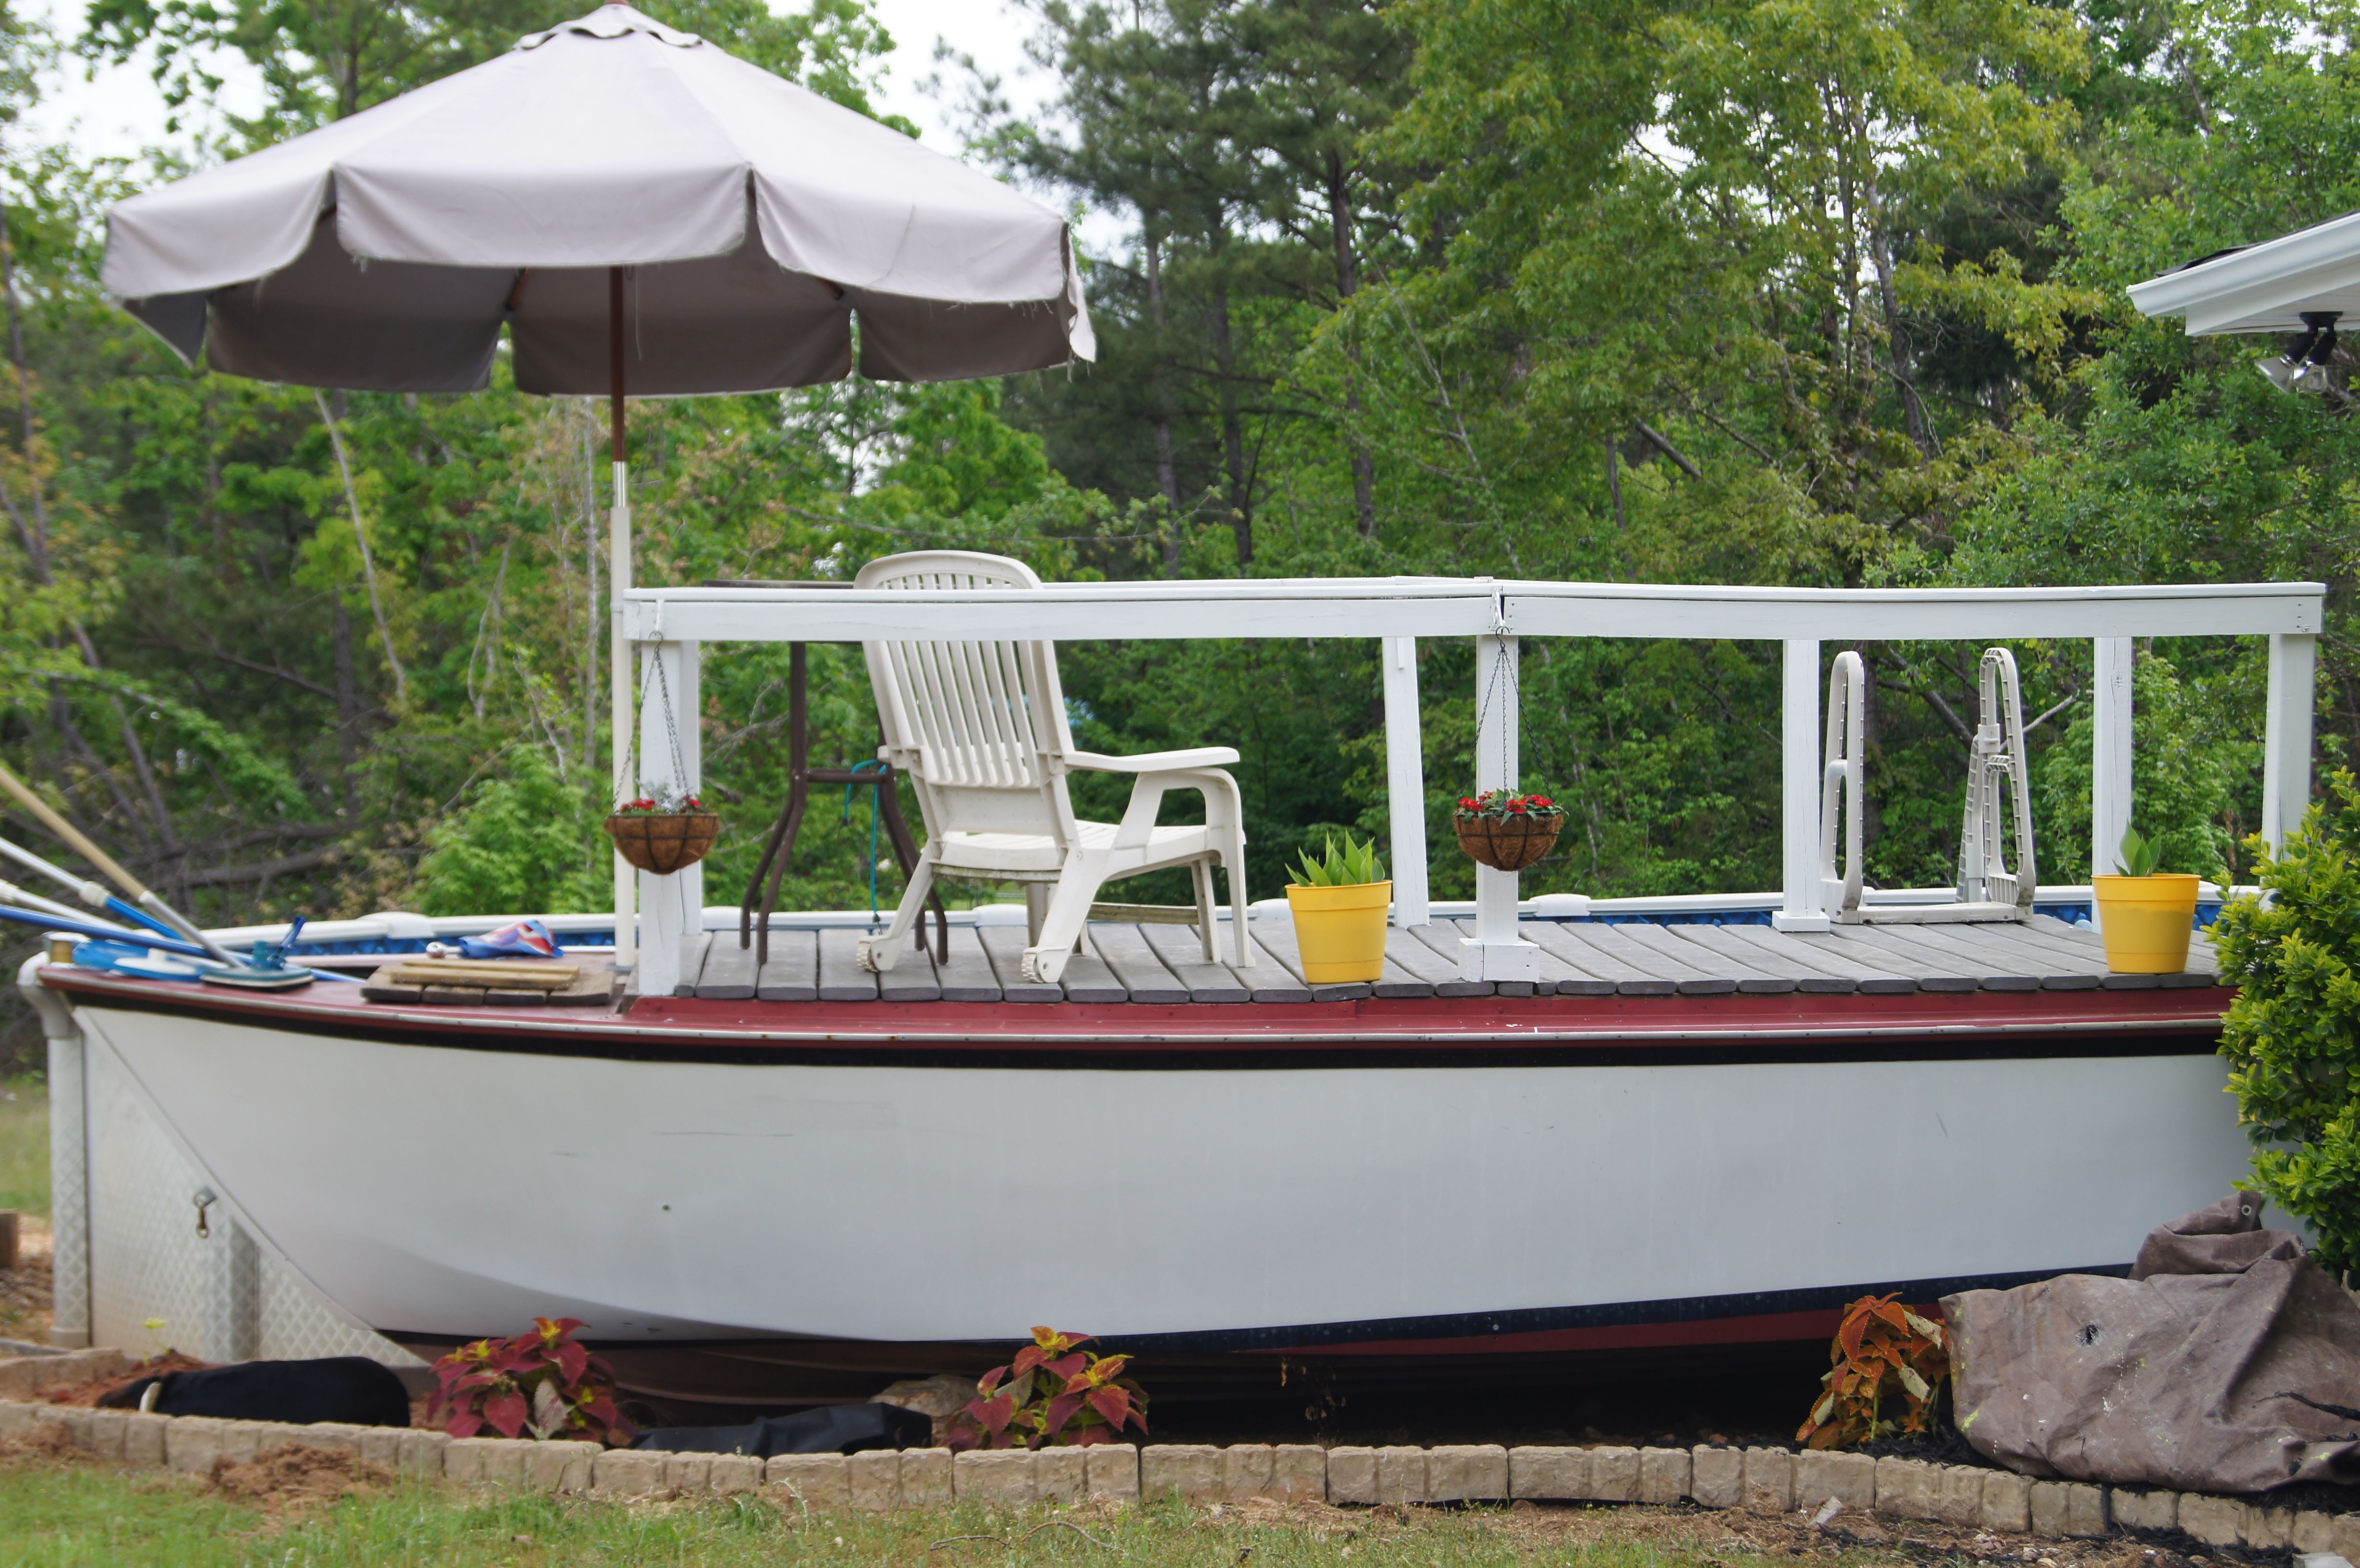 I took an old boat I found on craigslist for FREE and made it into ...